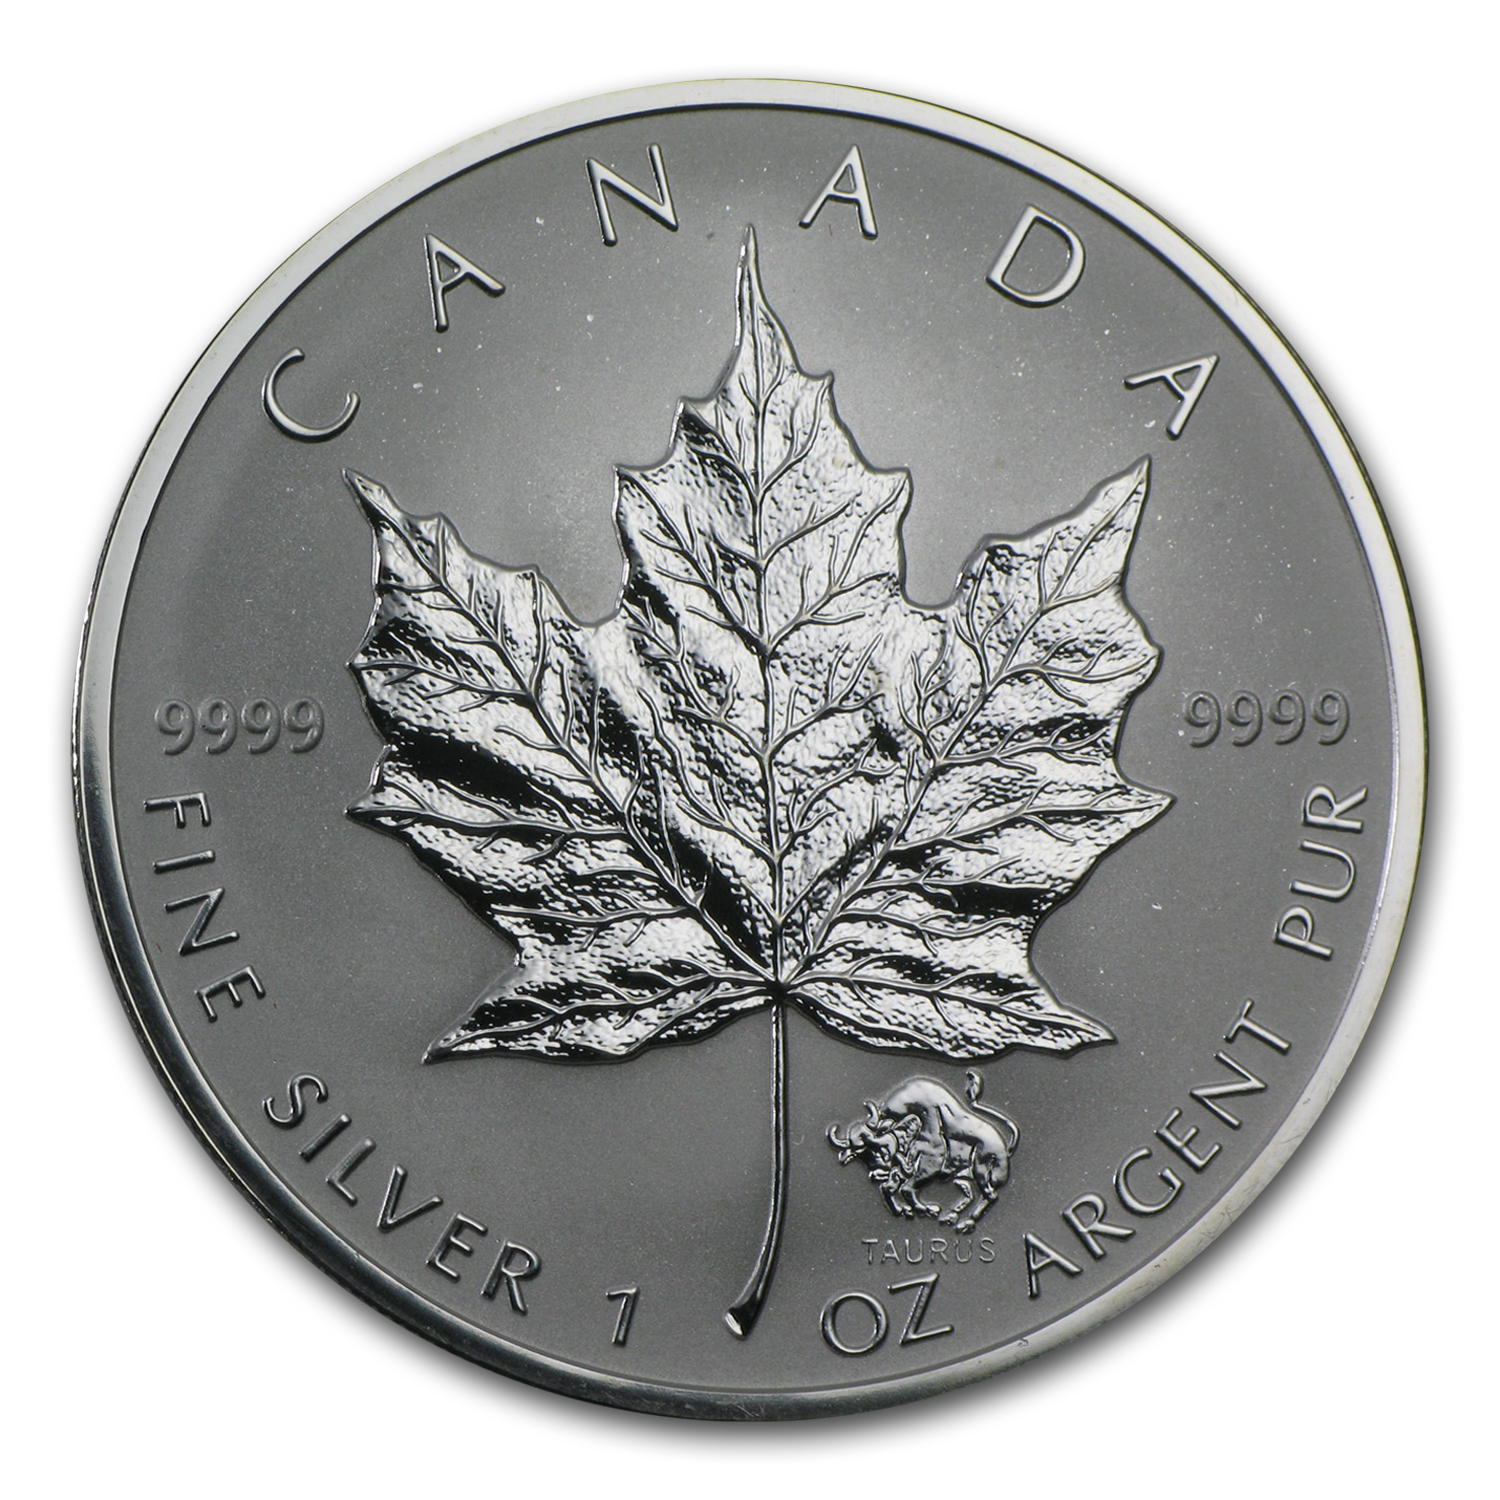 2004 1 oz Silver Canadian Maple Leaf - Taurus Zodiac Privy